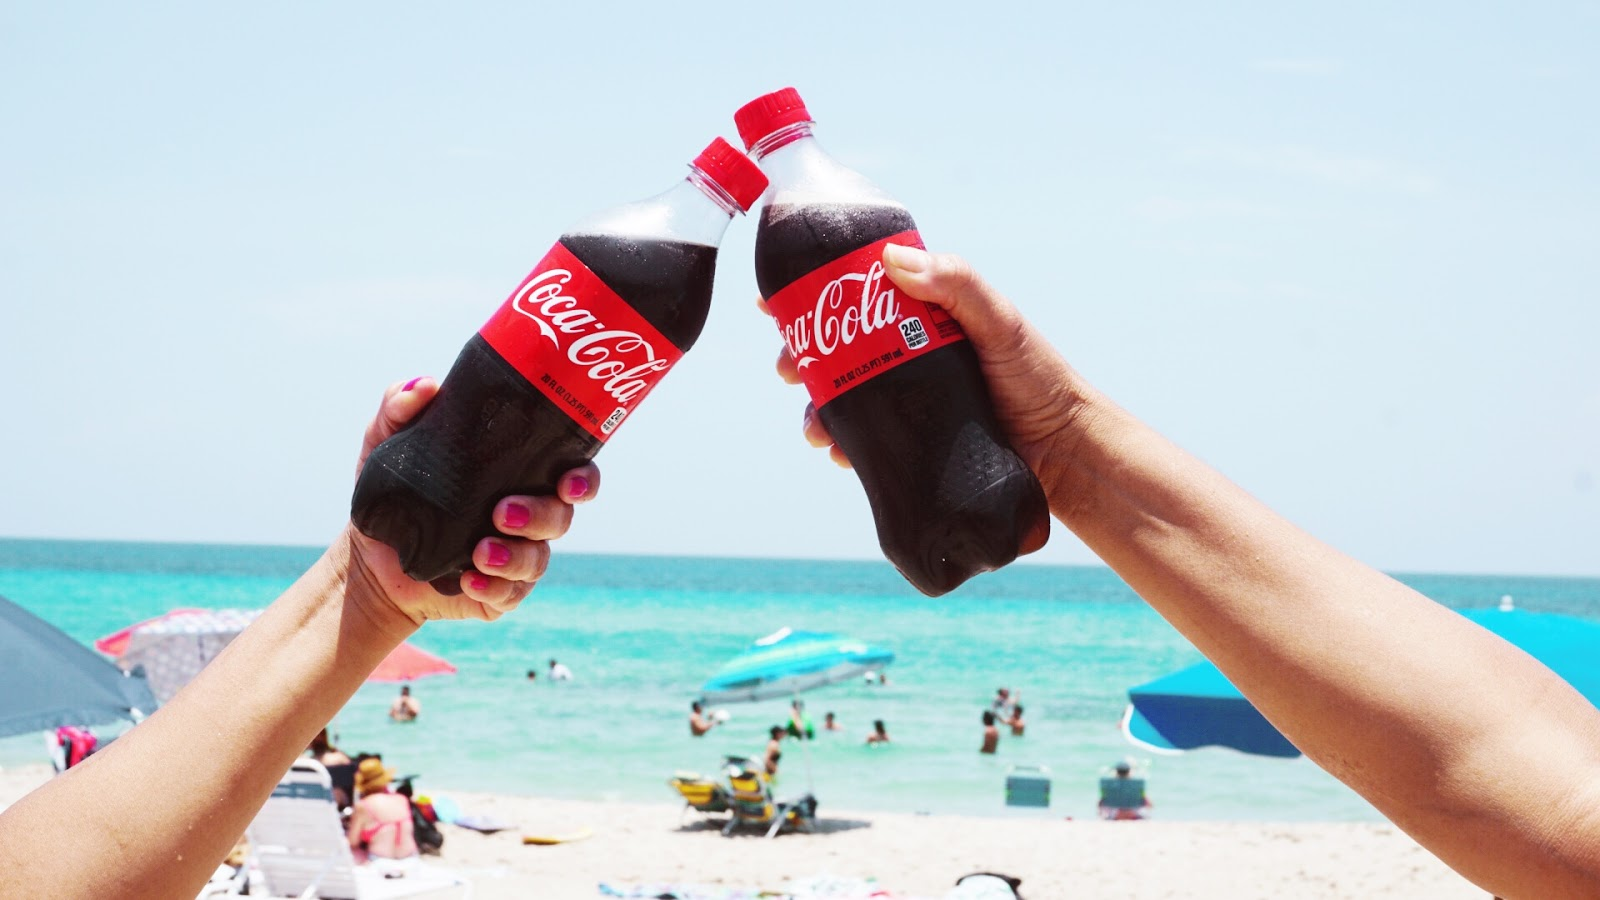 coca-cola-cheers-summer-beach